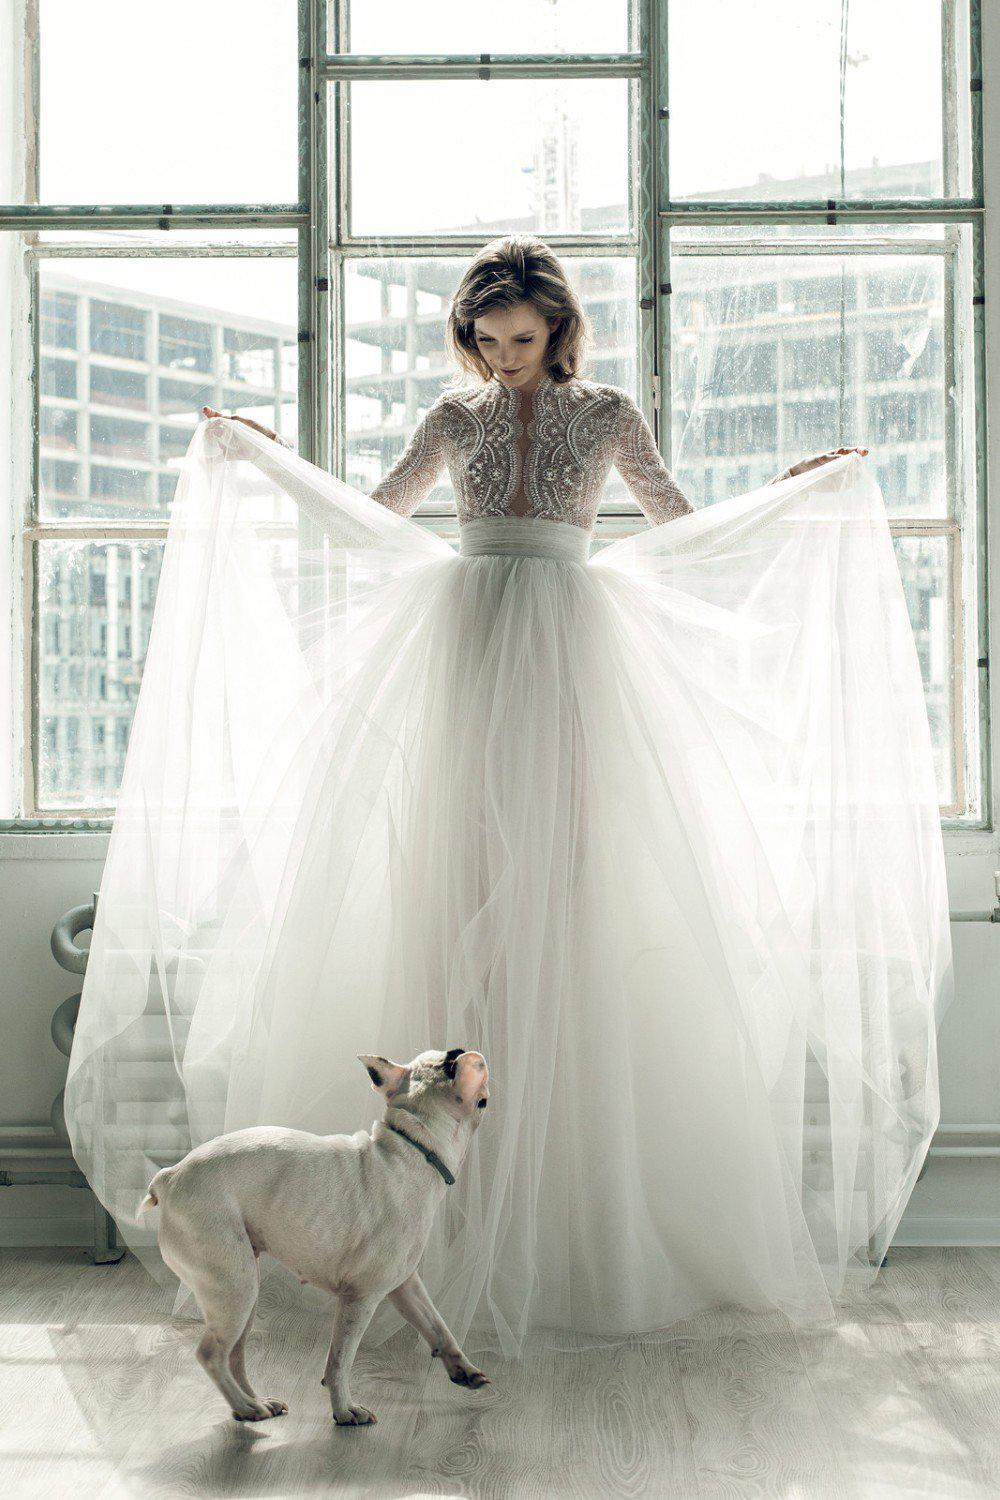 Vintage Beaded Wedding Dress and A-Line Tulle Skirt - Mr. & Mrs. Tomorrow